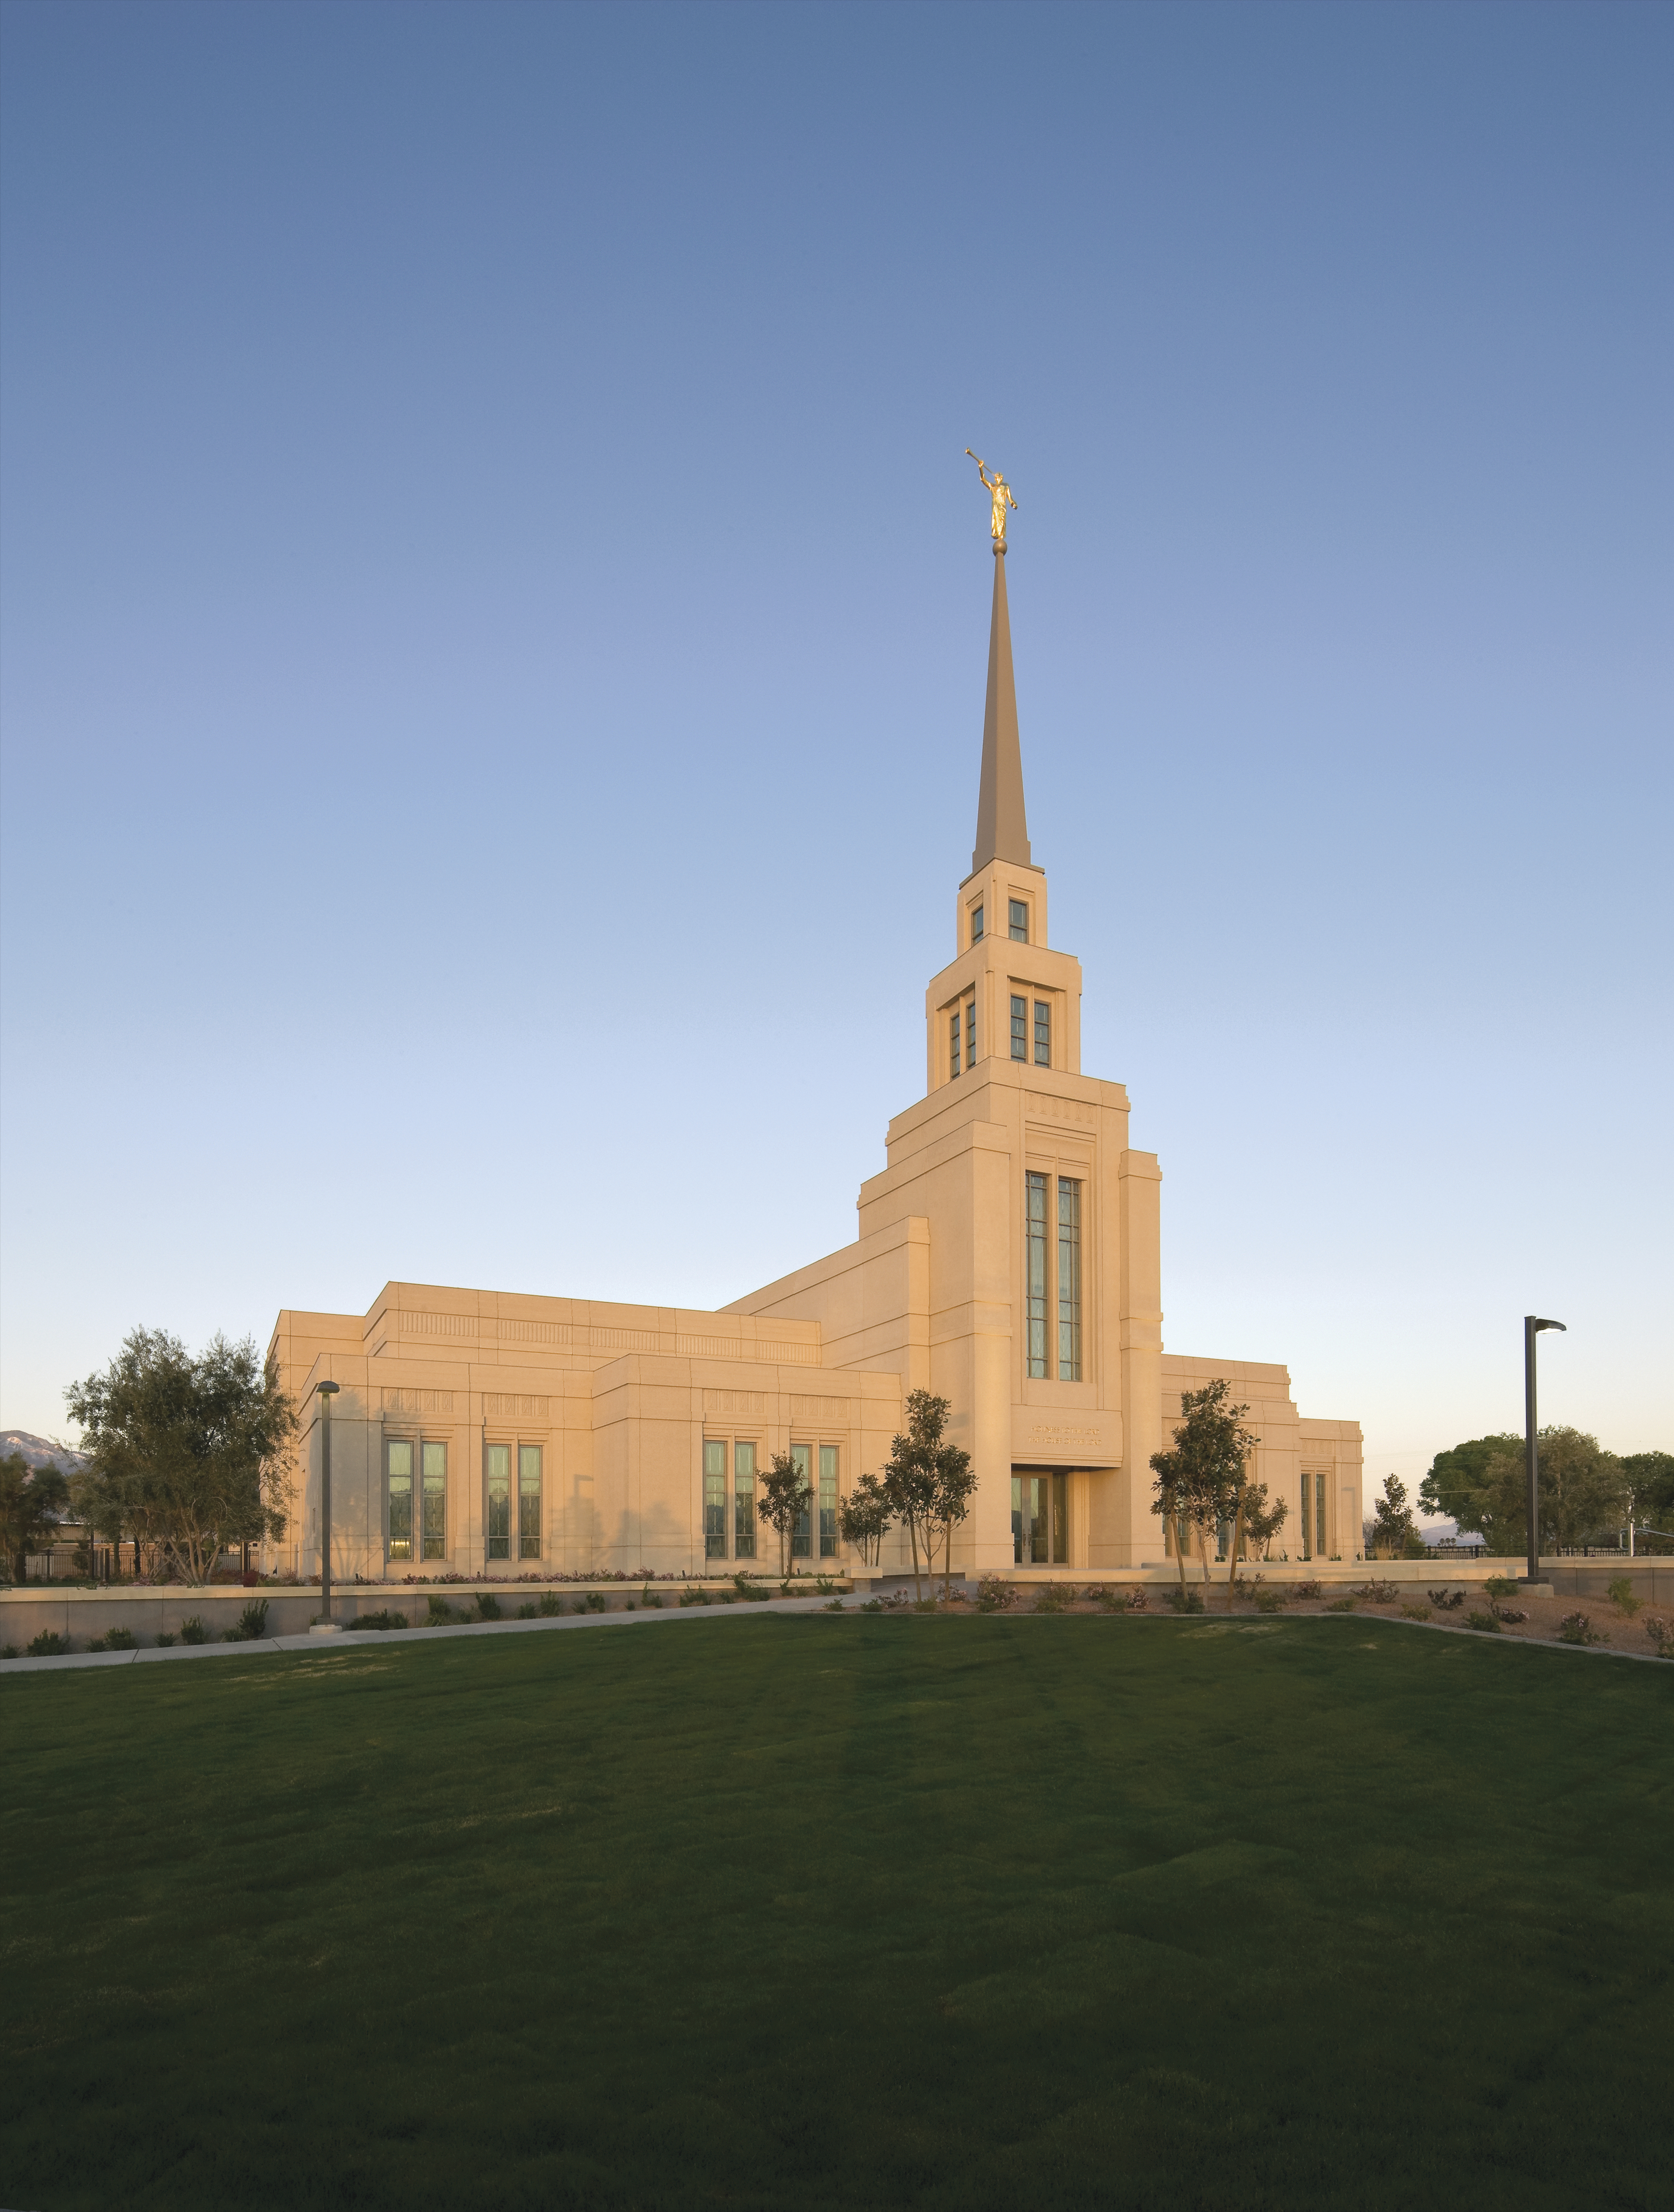 The Gila Valley Arizona Temple at sunset, including the grounds.